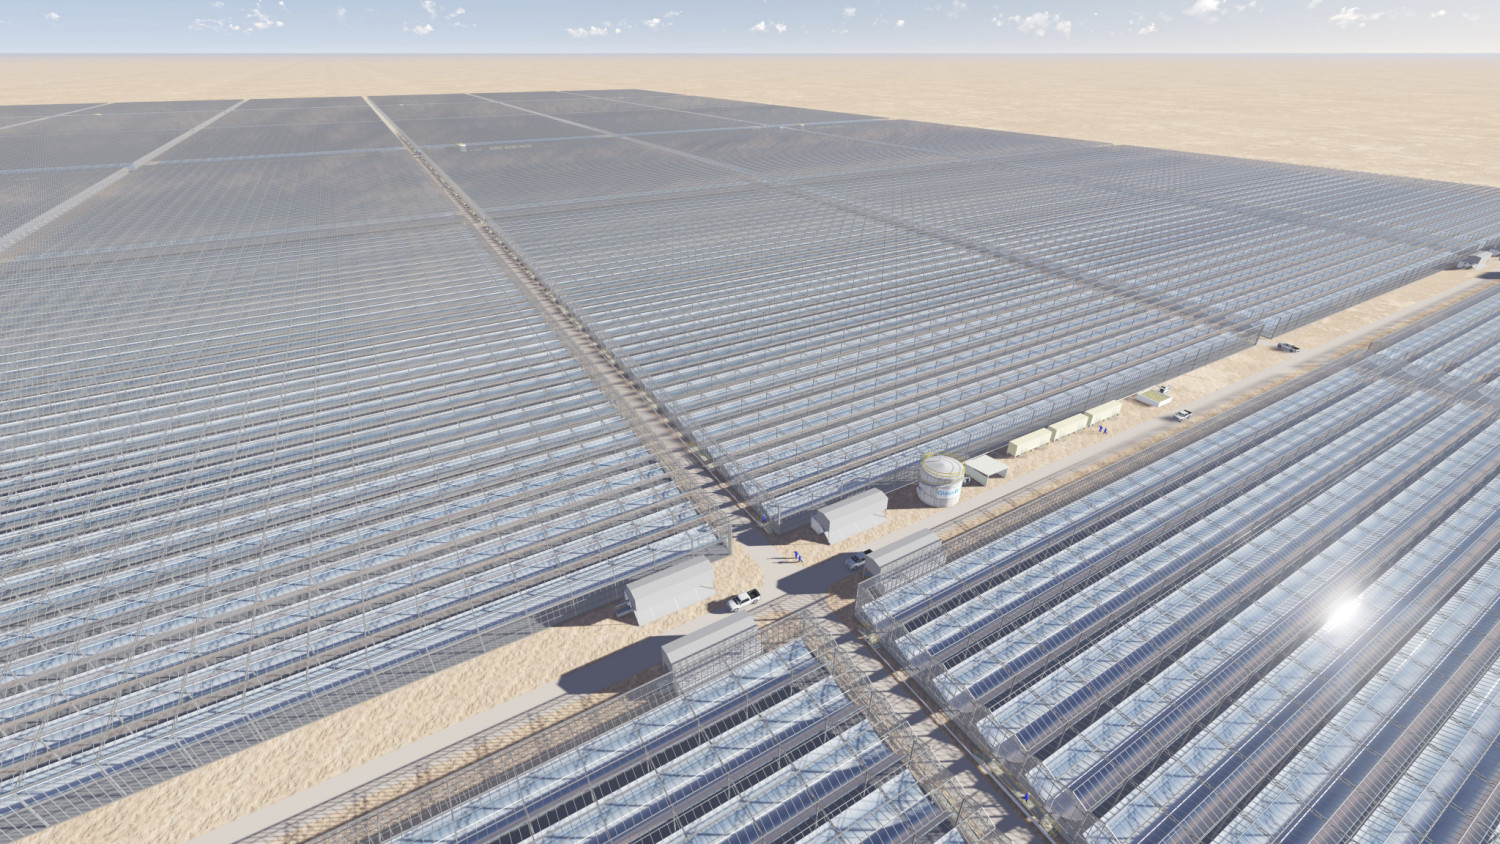 middle east and africa solar Here's every current fact you want to know about the pathway to solar generation in africa and the middle east.